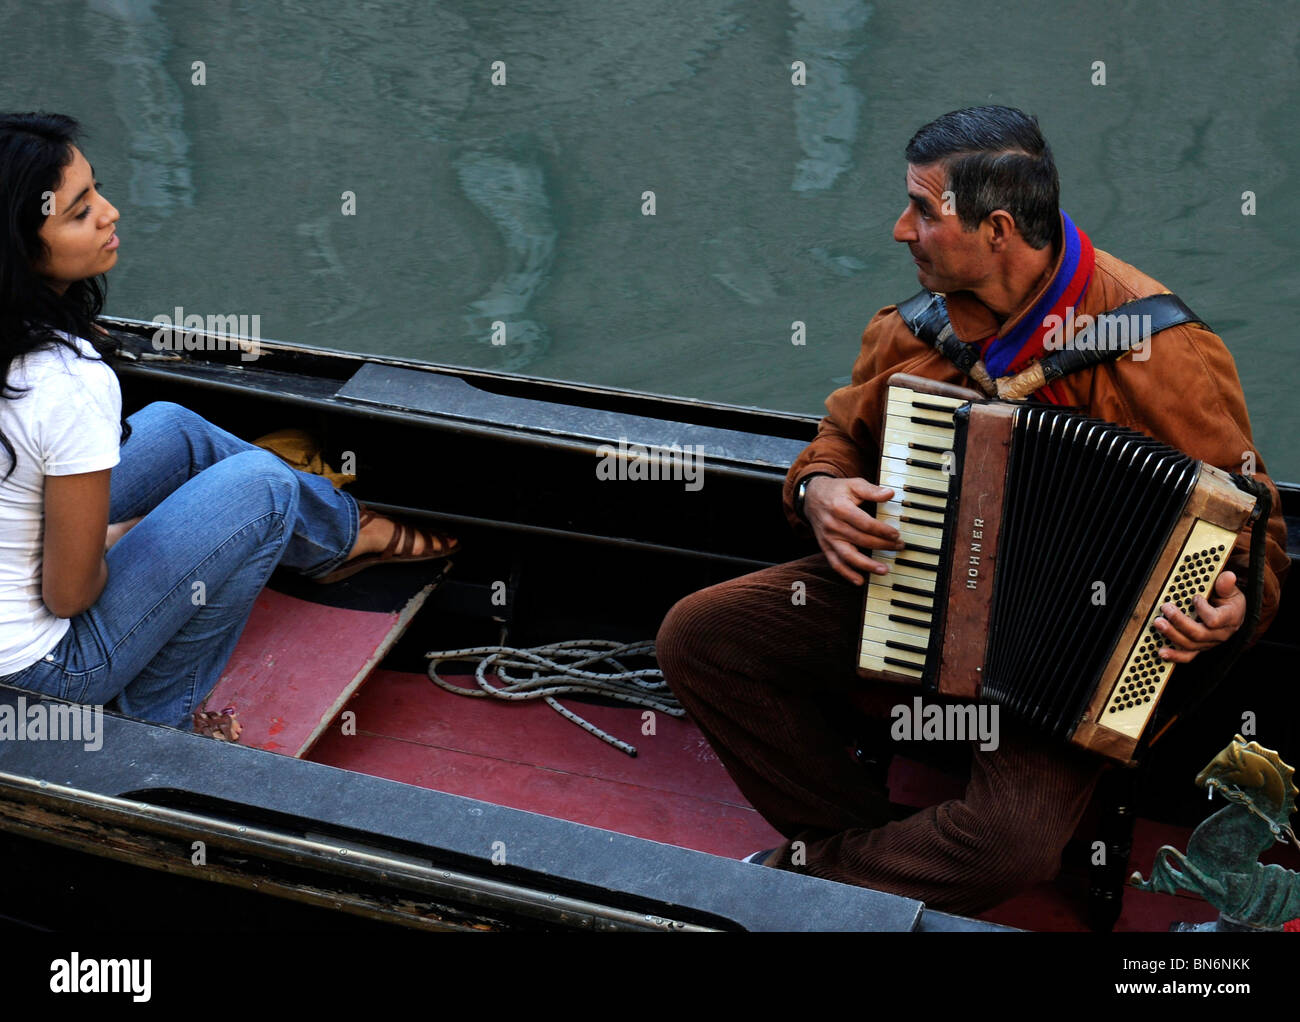 Accordianist serenades young girl on gondola in Venice Italy - Stock Image